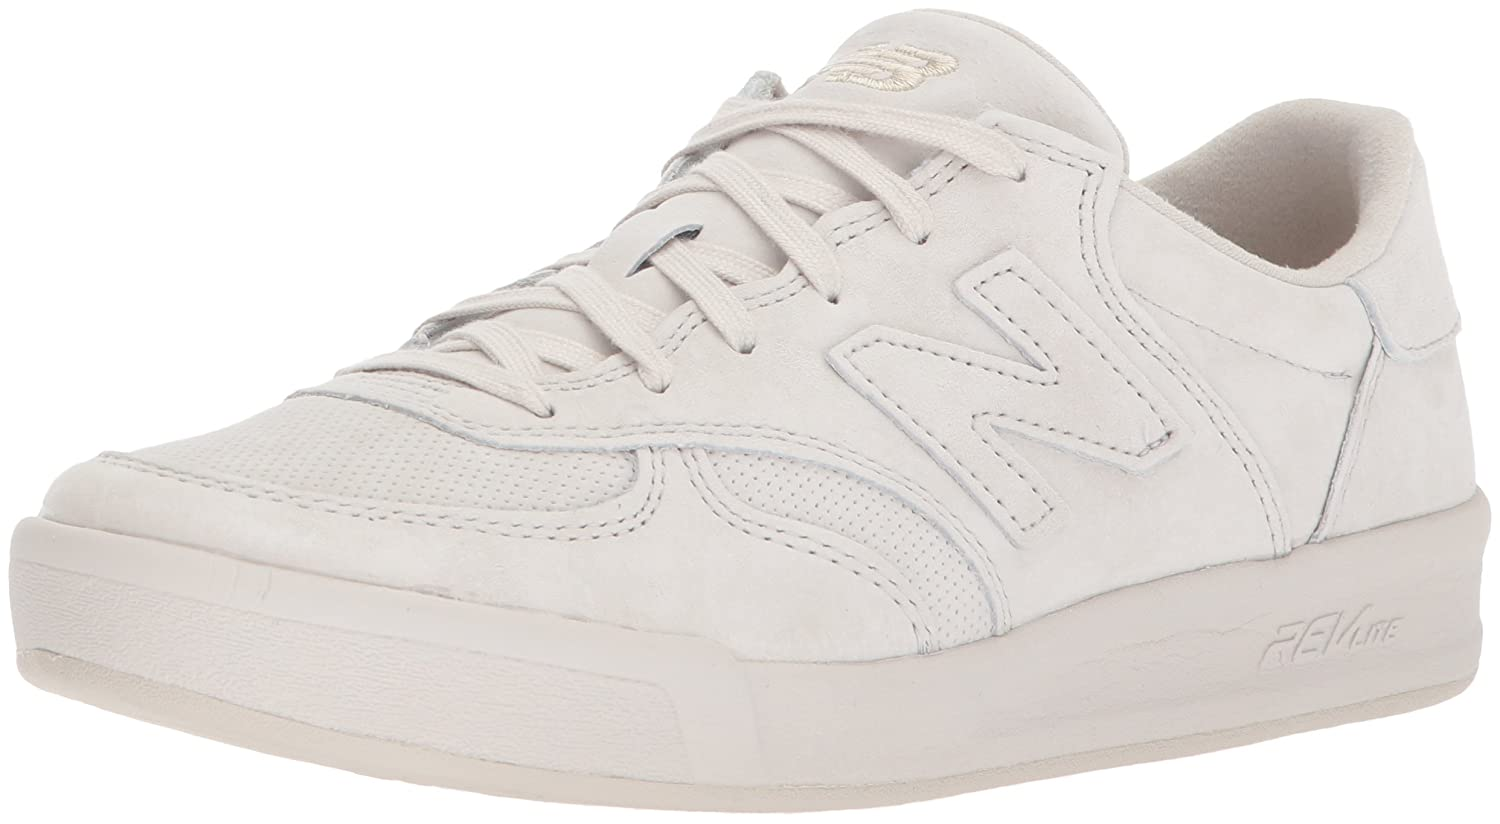 New Balance Women's 300v1 Sneaker B07176HLKP 5 D US|Moonbeam/Seasalt